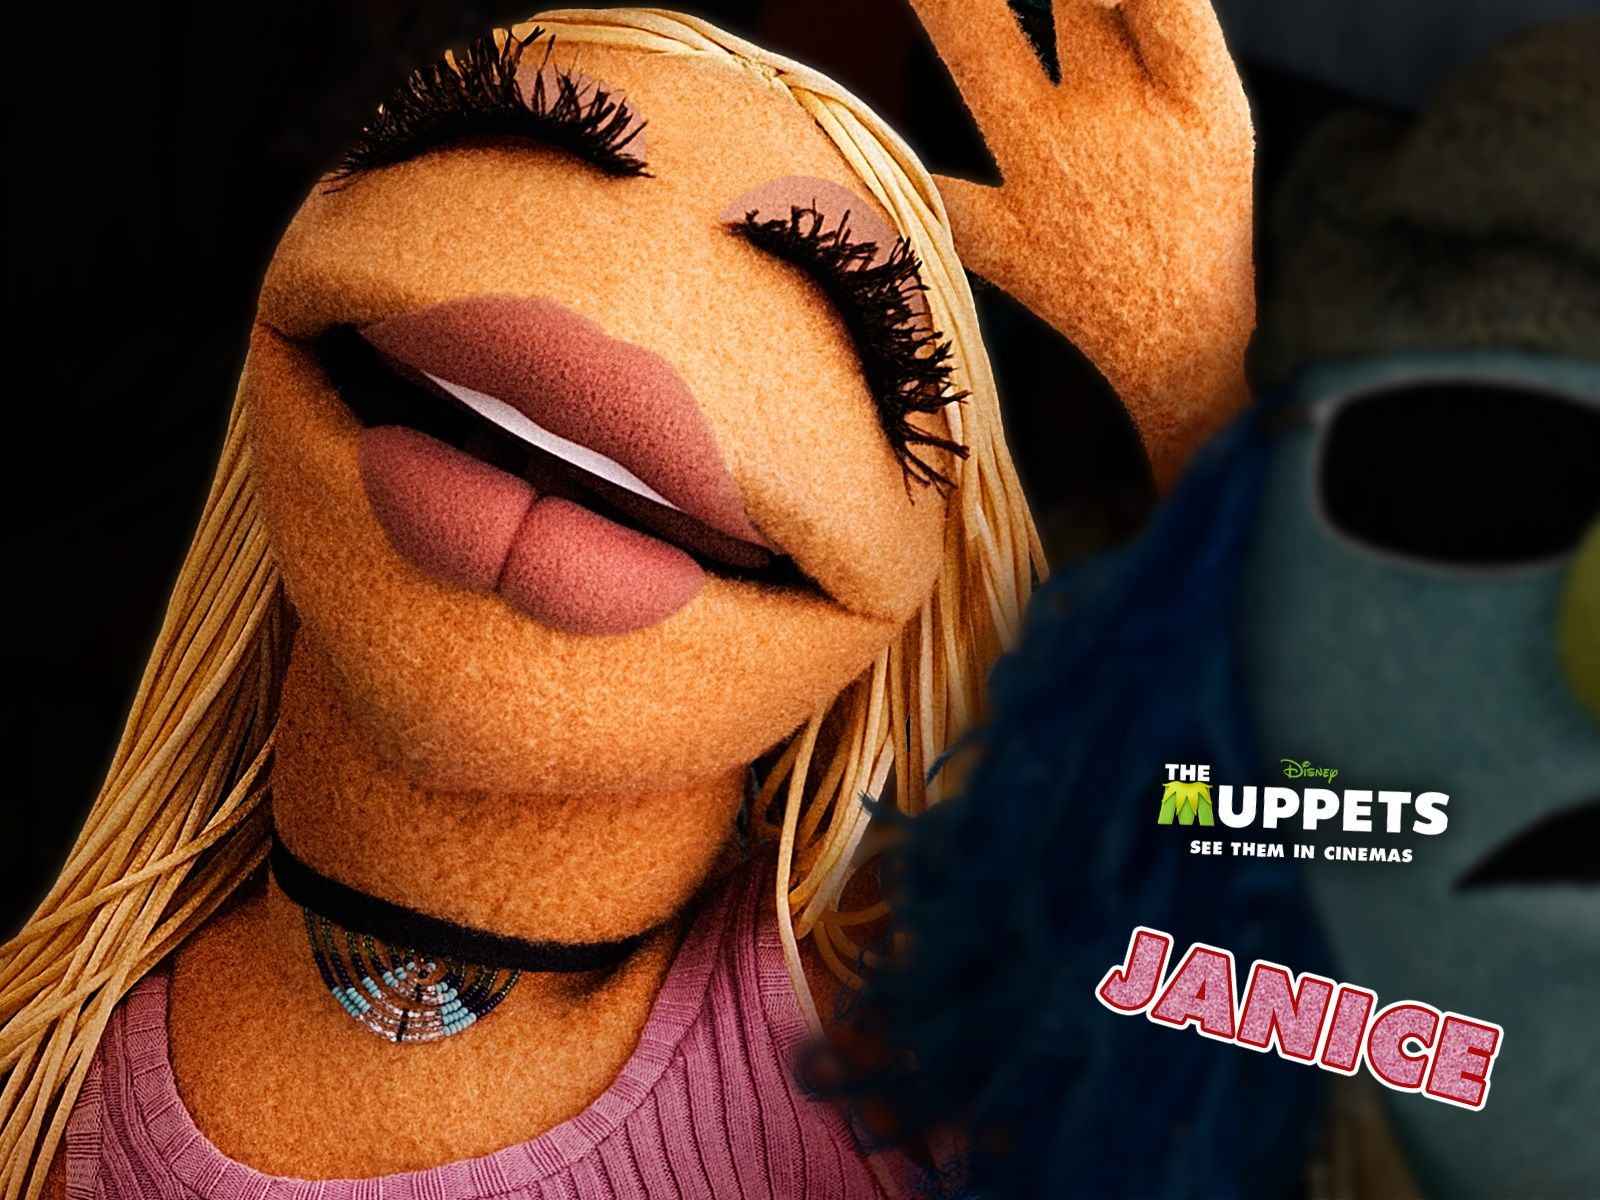 Janice rocker muppet black and white clipart graphic black and white library Janice - The Muppets | Character Design | The muppets characters ... graphic black and white library